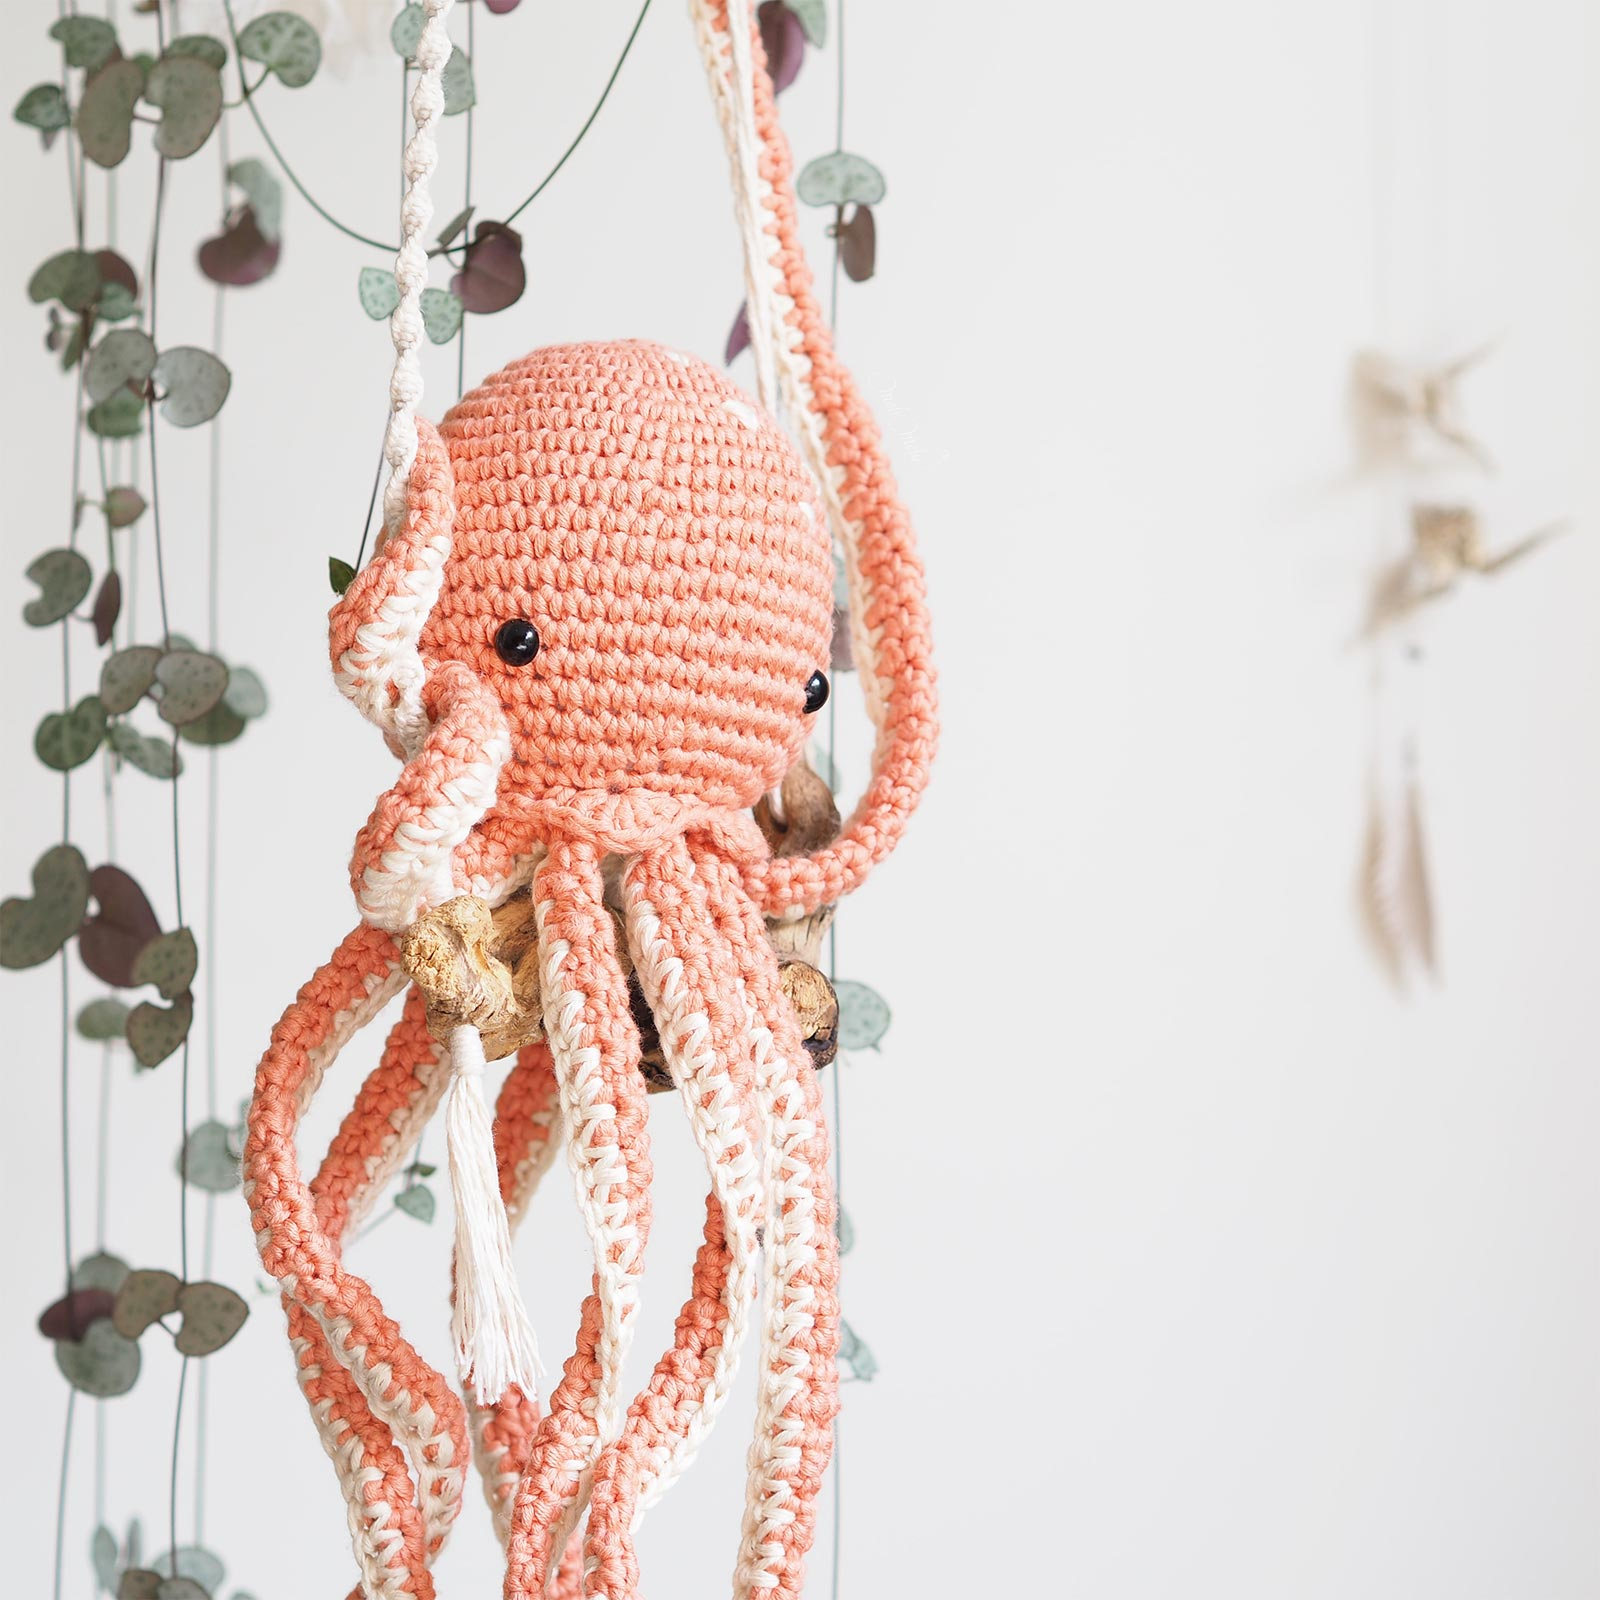 pieuvre poulpe octopus crochet coton Pima saumon We Are Knitters laboutiquedemelimelo